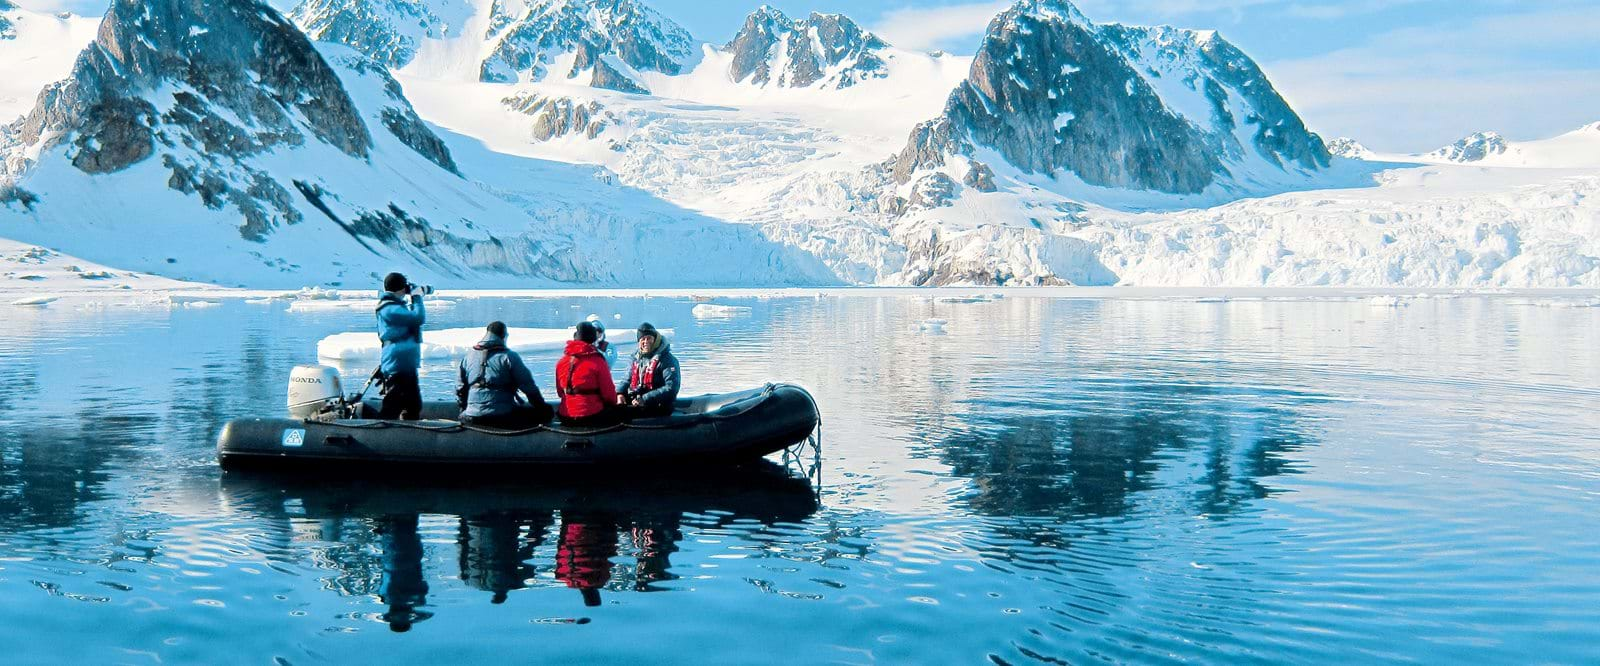 Zodiac cruise, Svalbard, expedition cruise, Arctic cruise